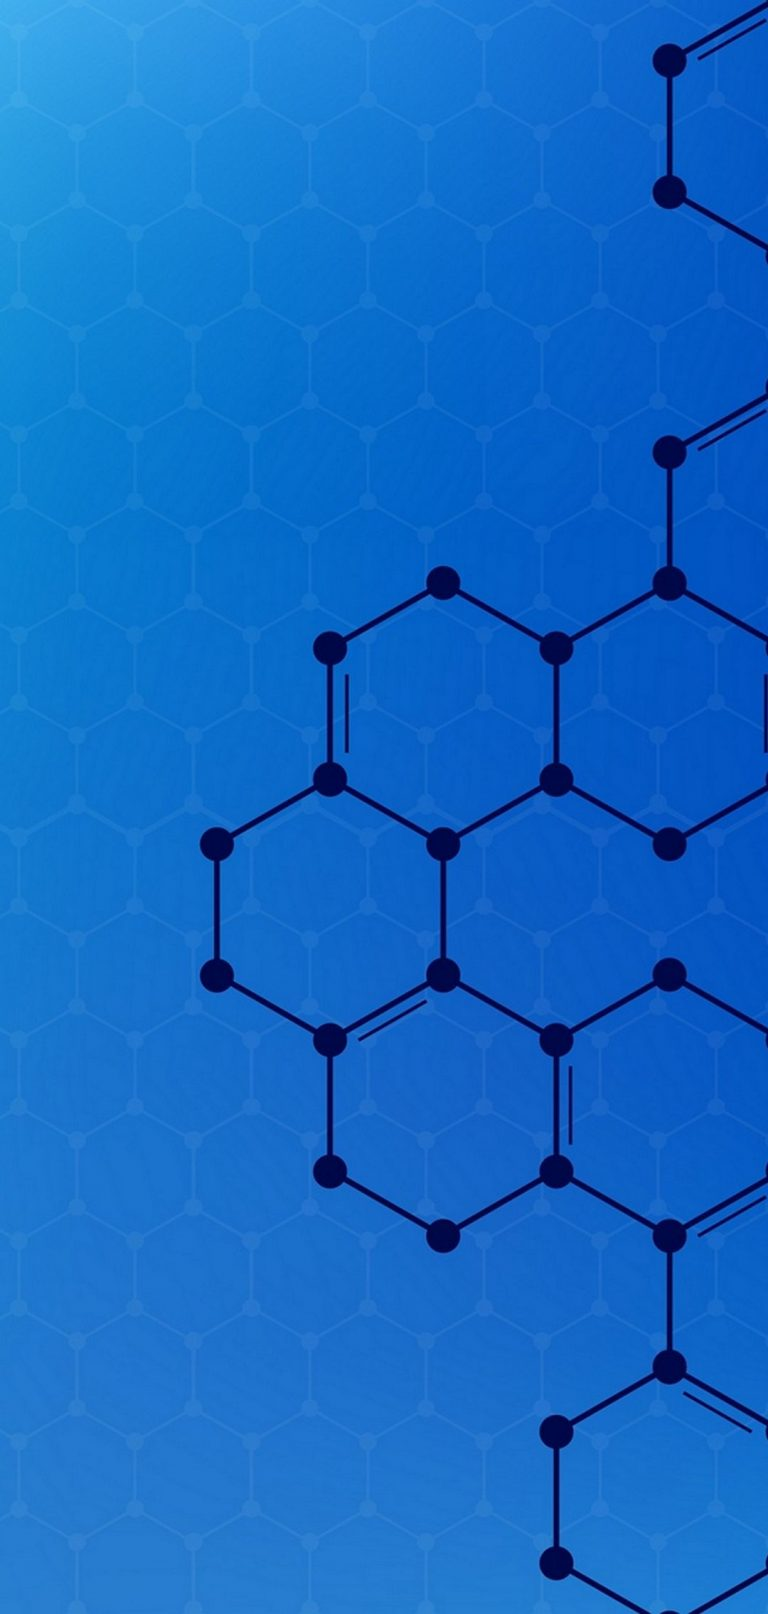 Hexagons Shape Connections 1080x2270 768x1614